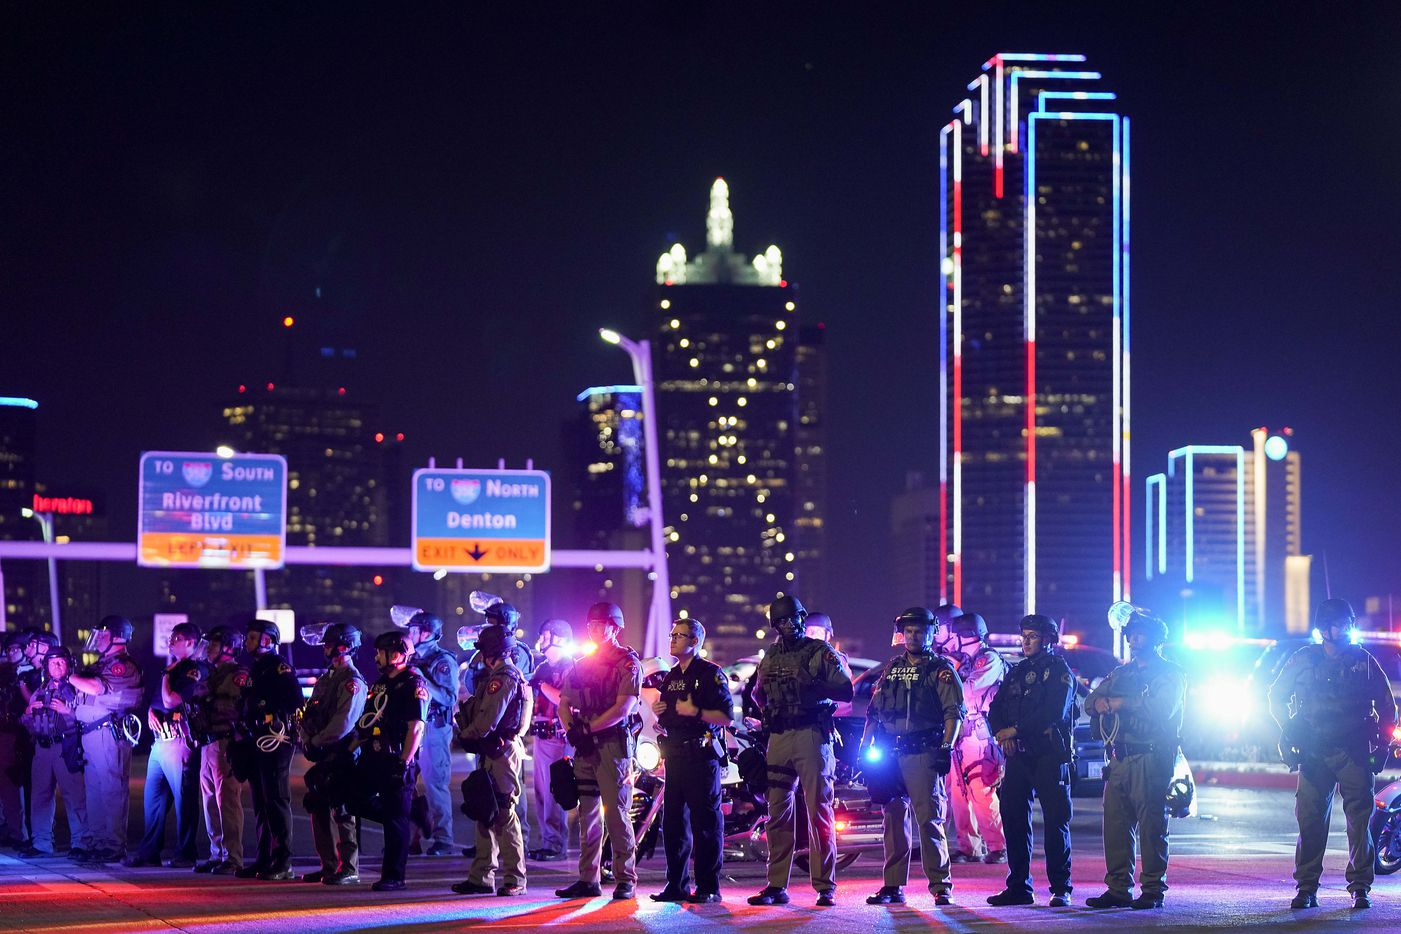 Law enforcement officers block the western side of the Margaret Hunt Hill Bridge while police conduct mass arrests on the bridge after protesters demonstrating against police brutality marched onto the bridge on Monday, June 1, 2020, in Dallas. Protests continued Monday, a week after the death of George Floyd.